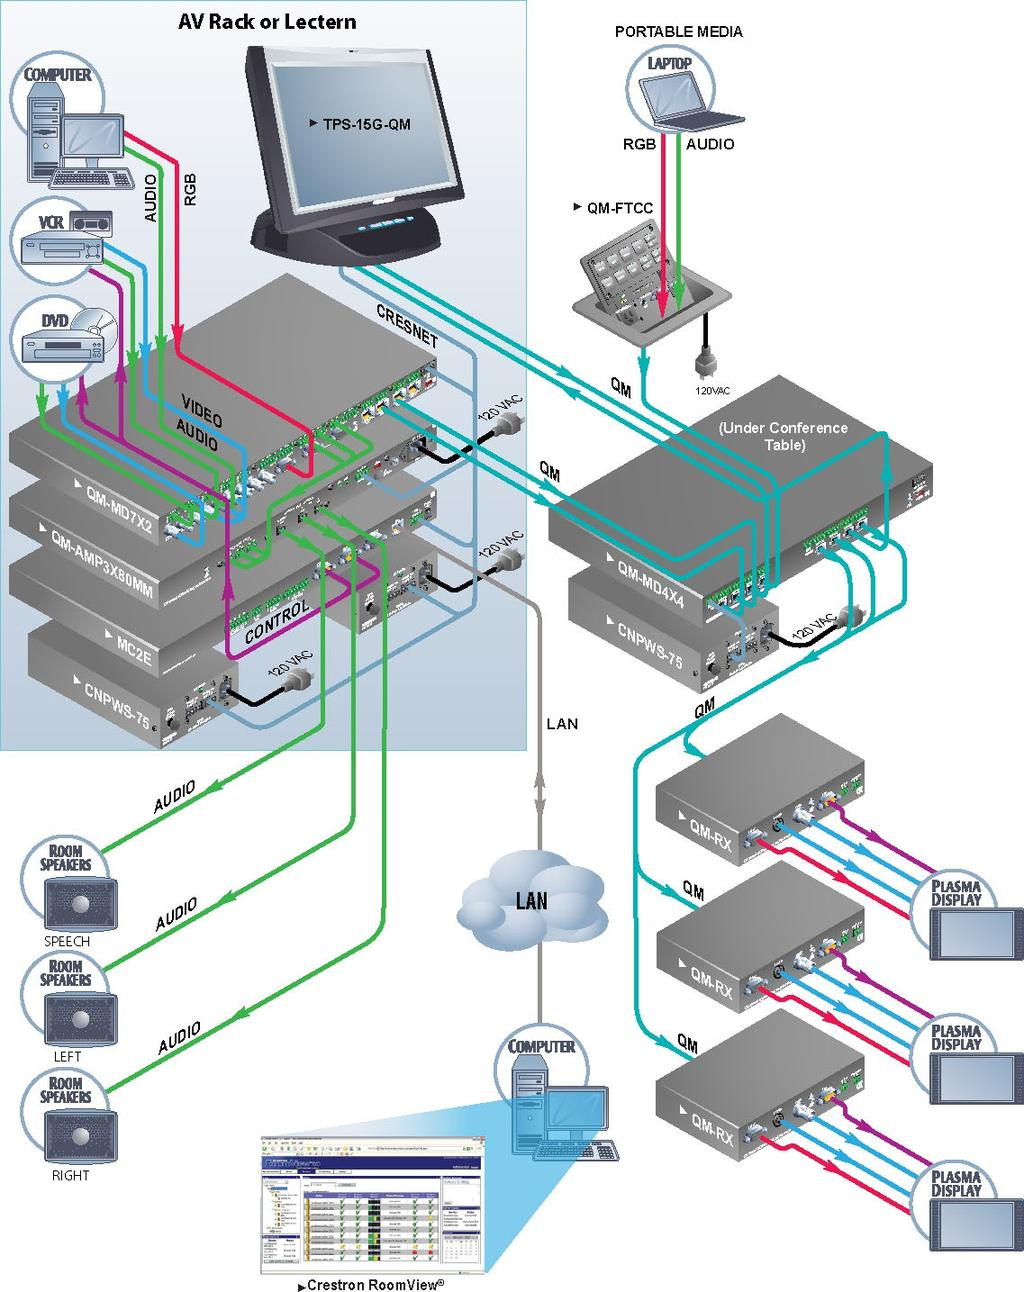 Crestron Qm Md4x4 4x4 Quickmedia Matrix Switcher Operations Guide Pdf Series Wiring Diagrams In A Business Application For